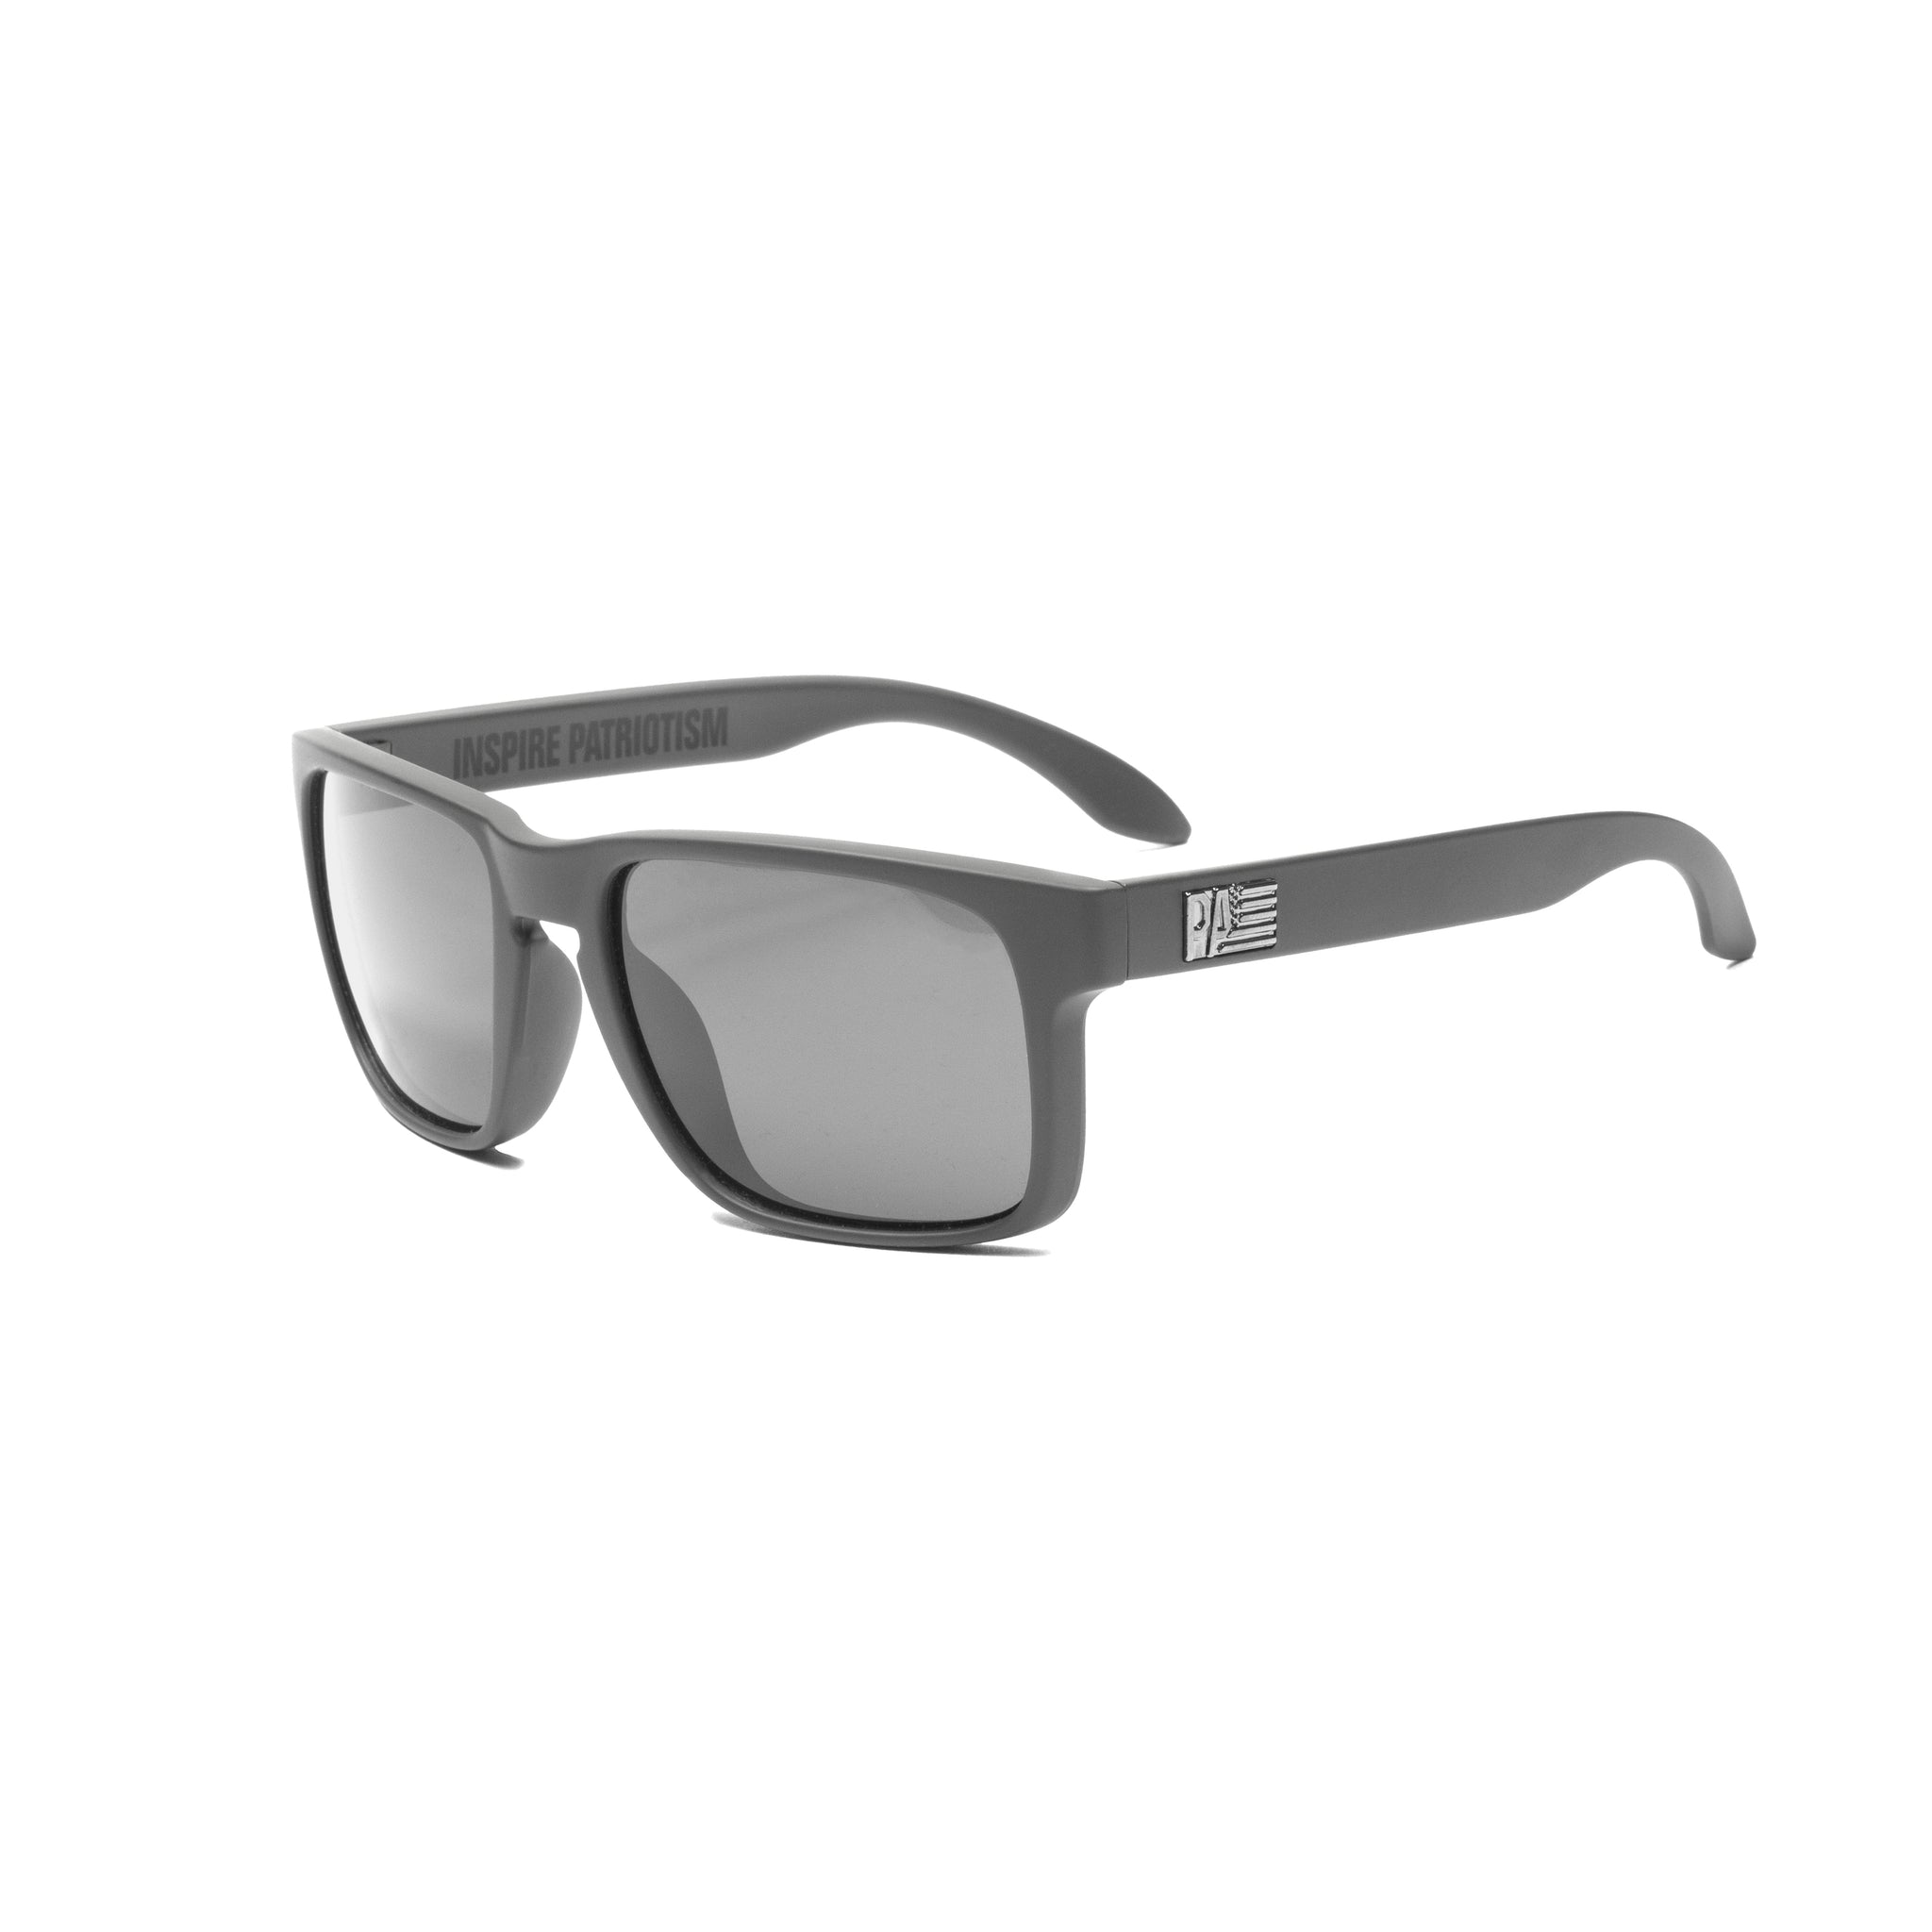 PA Logo Sunglasses, Matte Grey